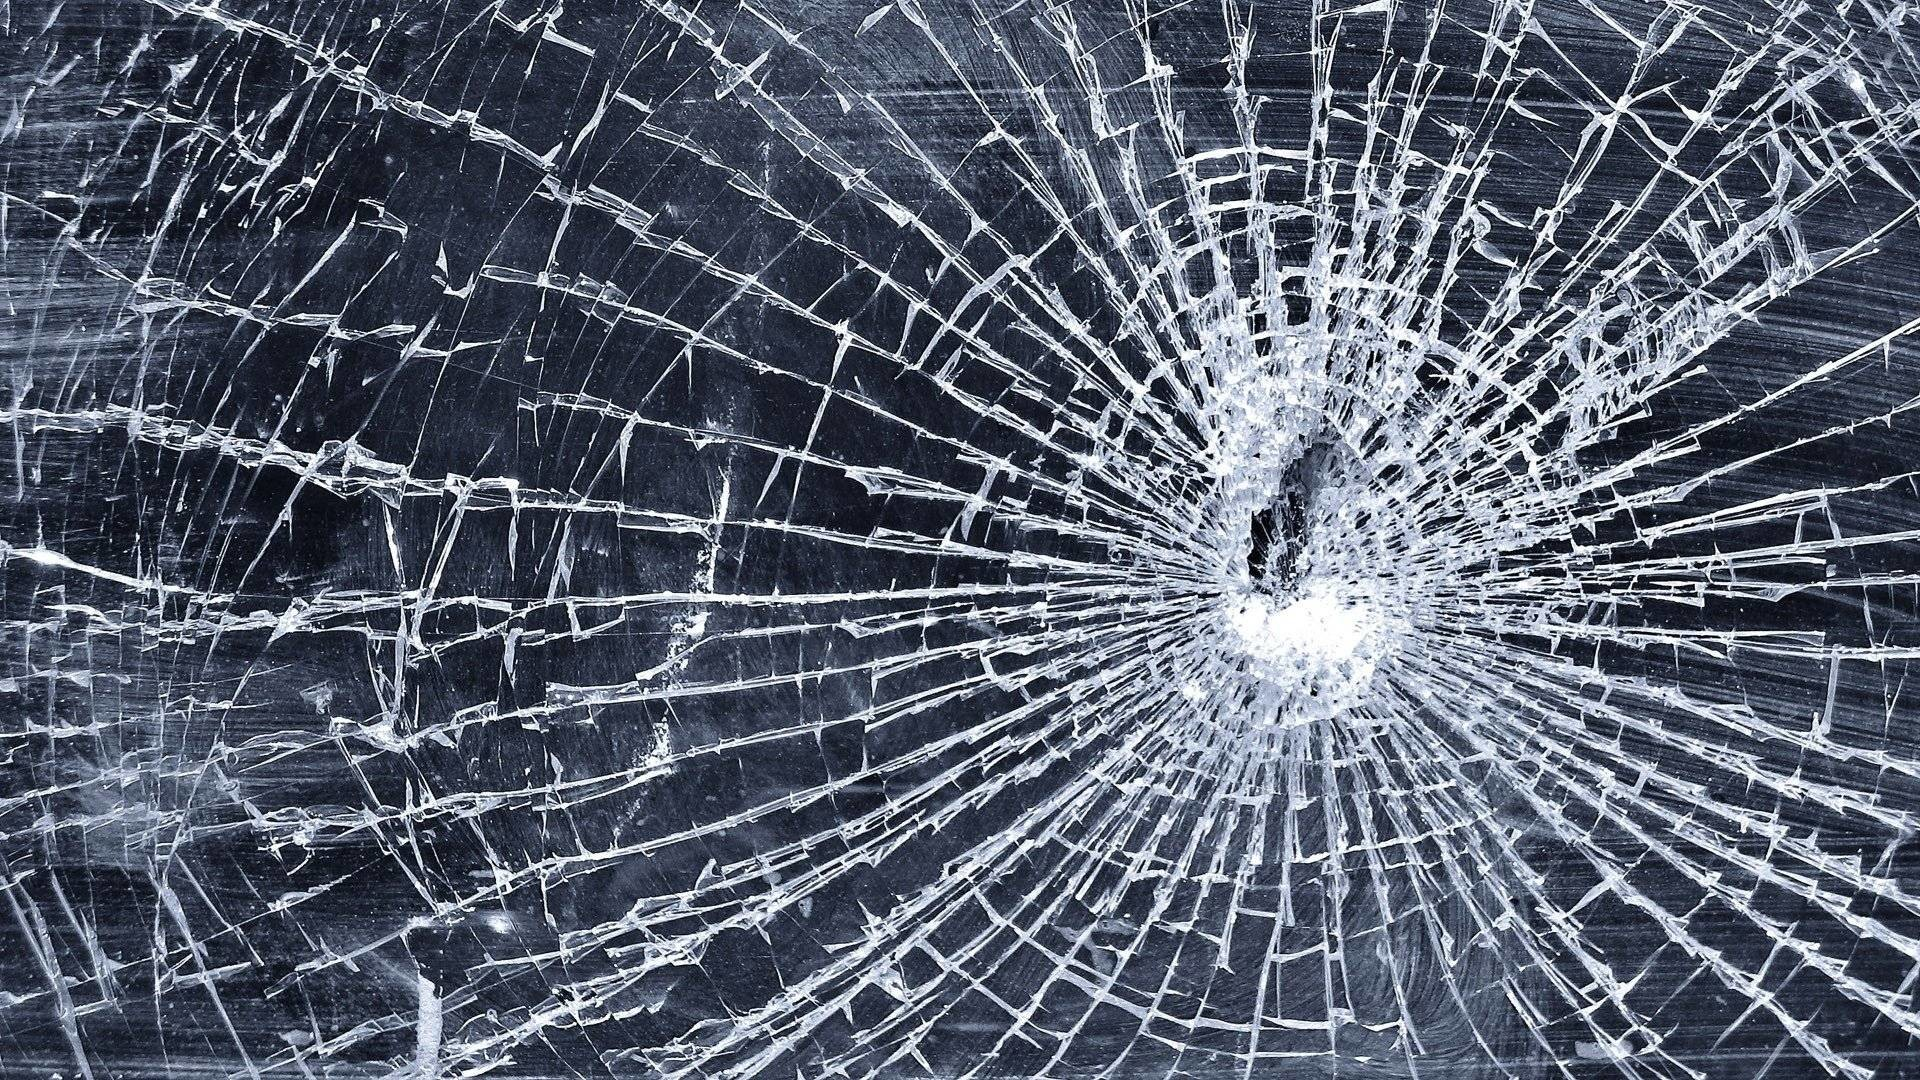 Cracked Phone Screen Wallpaper 67 Images